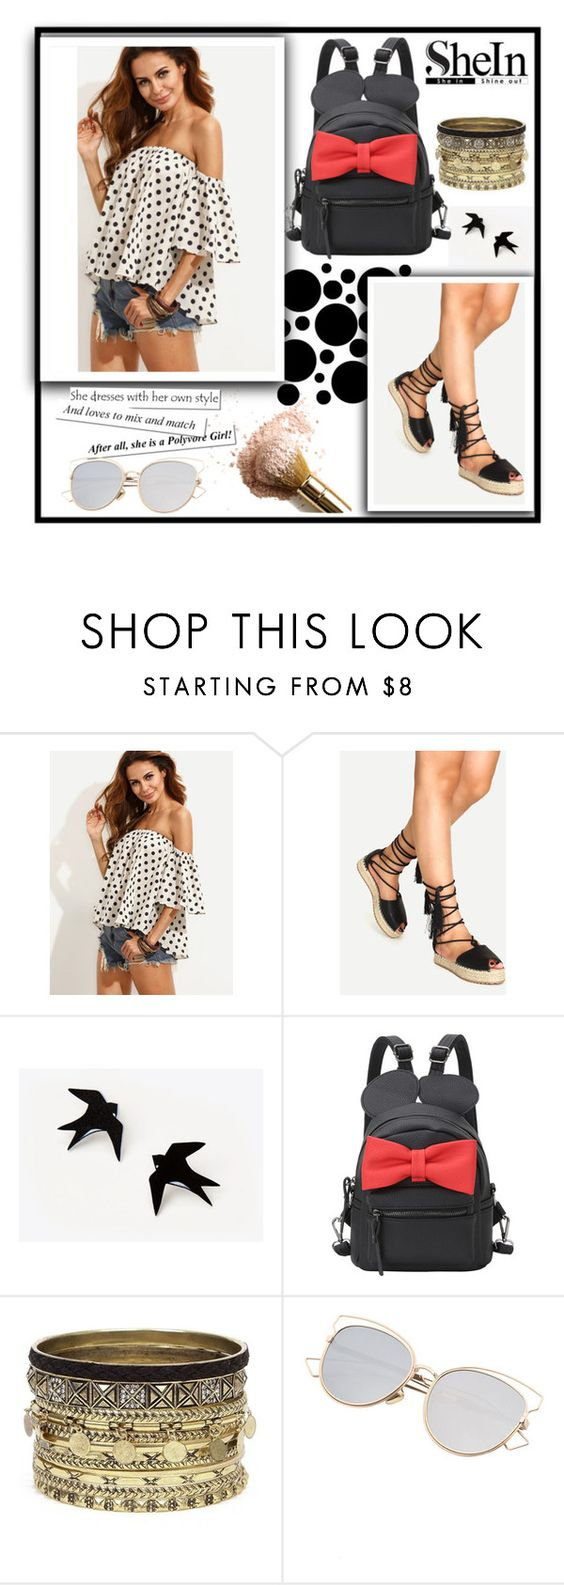 """Shein 1."" by b-necka ❤ liked on Polyvore featuring Daytrip, Sheinside and shein"